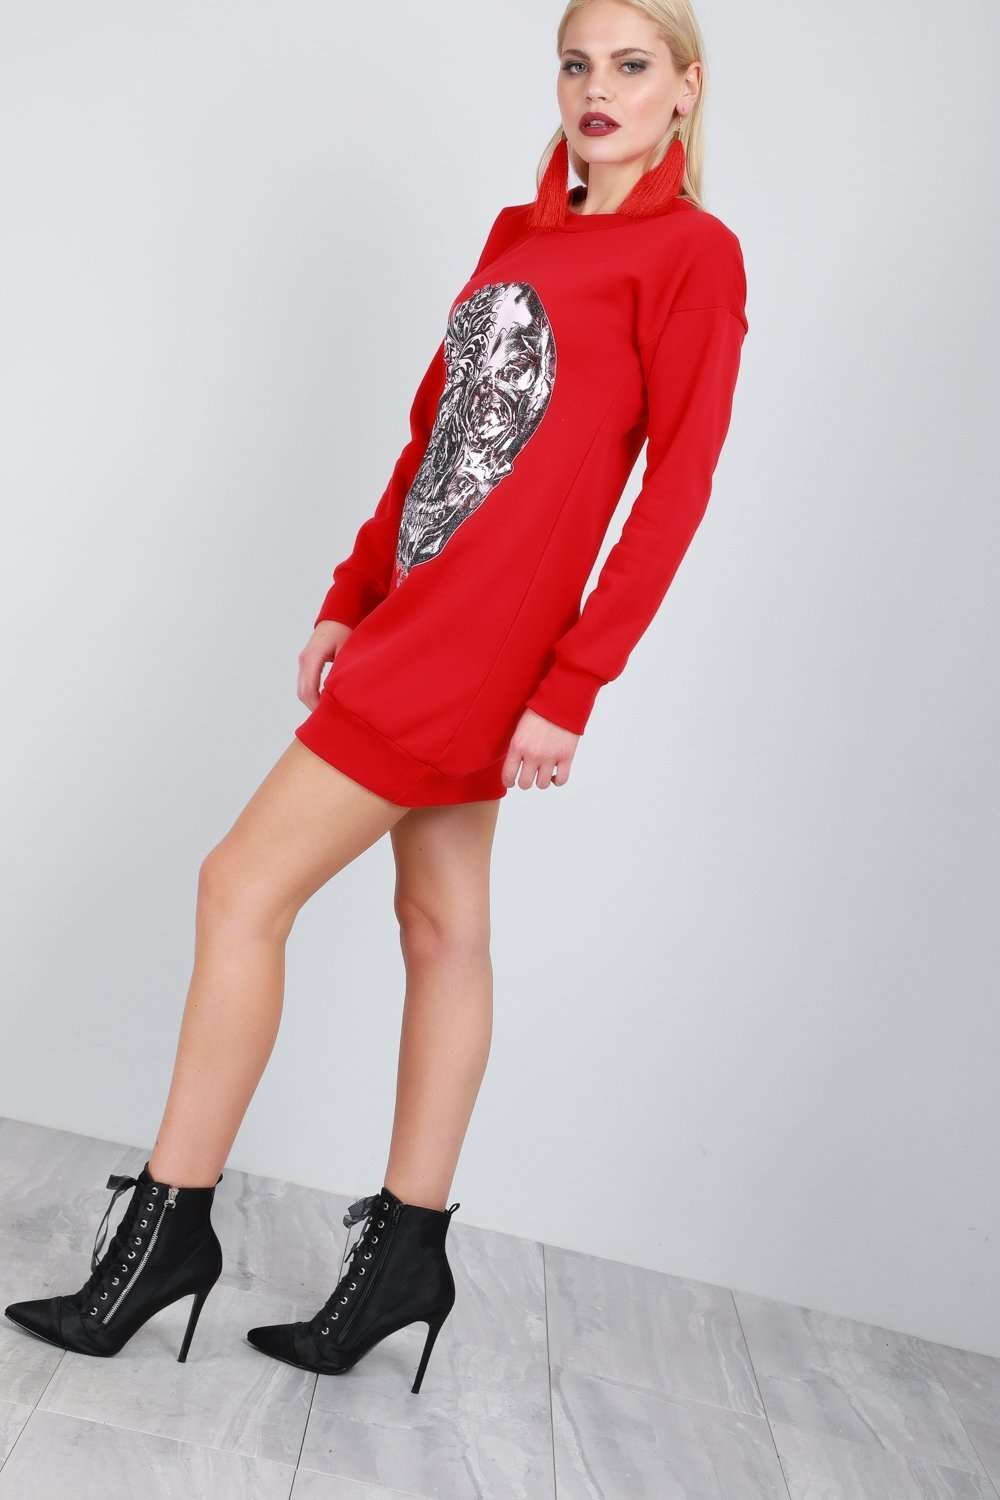 Oversized Skull Print Sweater Dress - bejealous-com